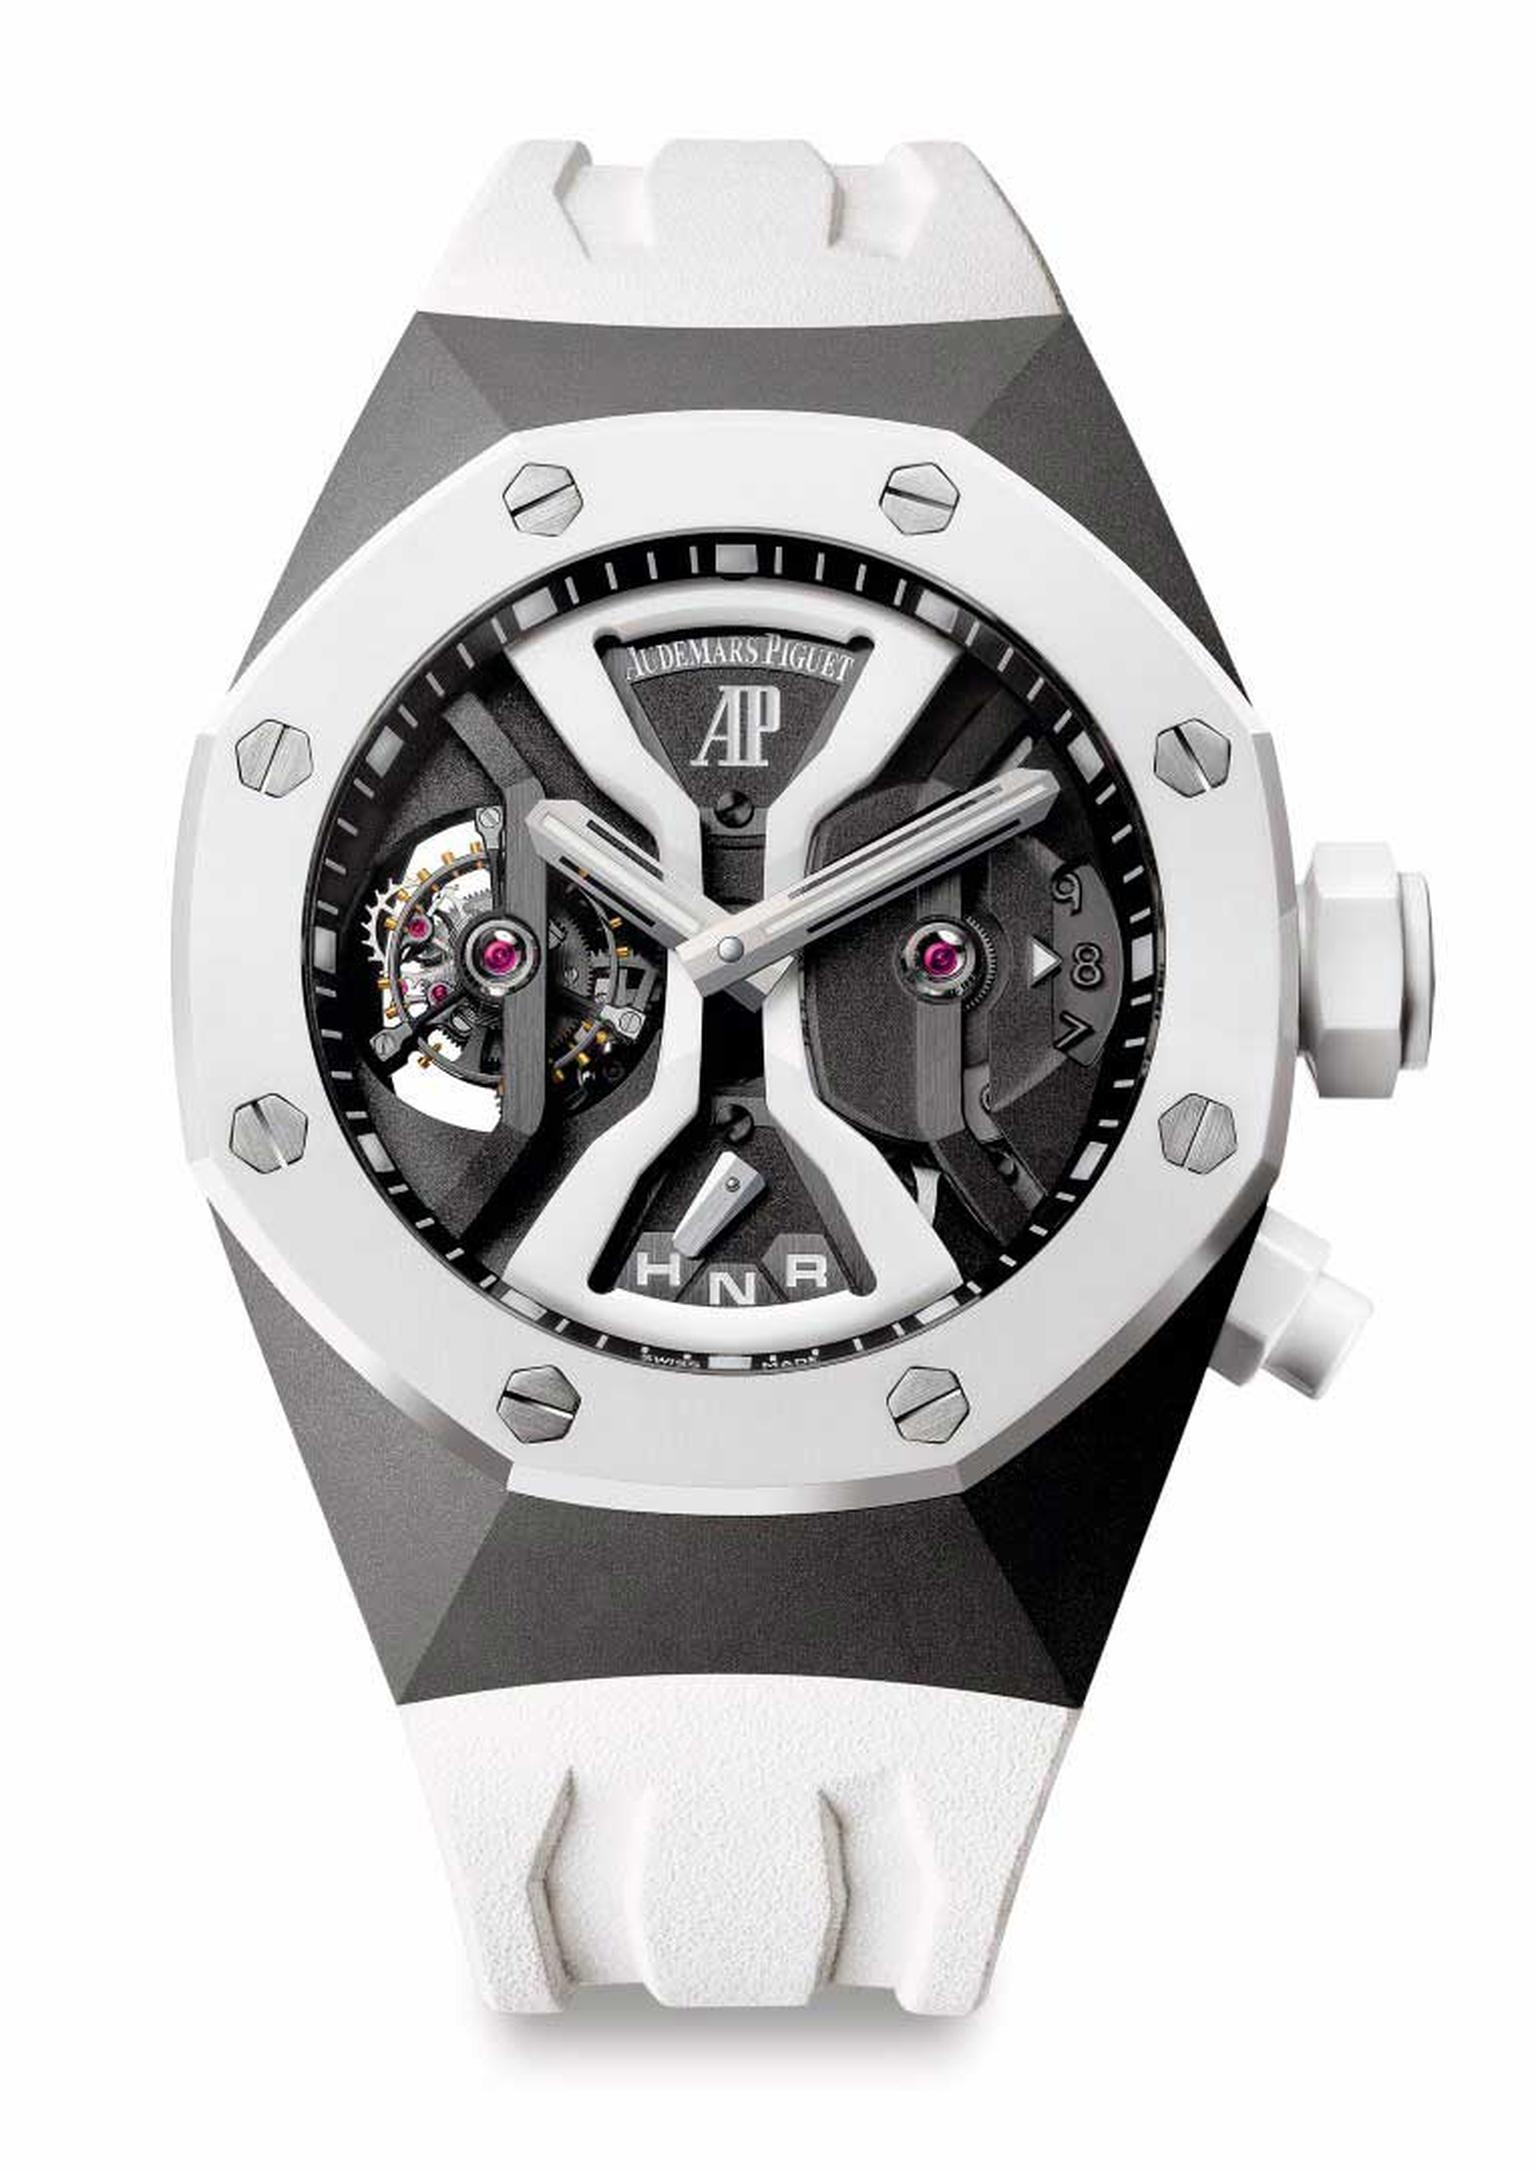 Audemars Piguet Royal Oak Concept GMT Tourbillon in white ceramic.